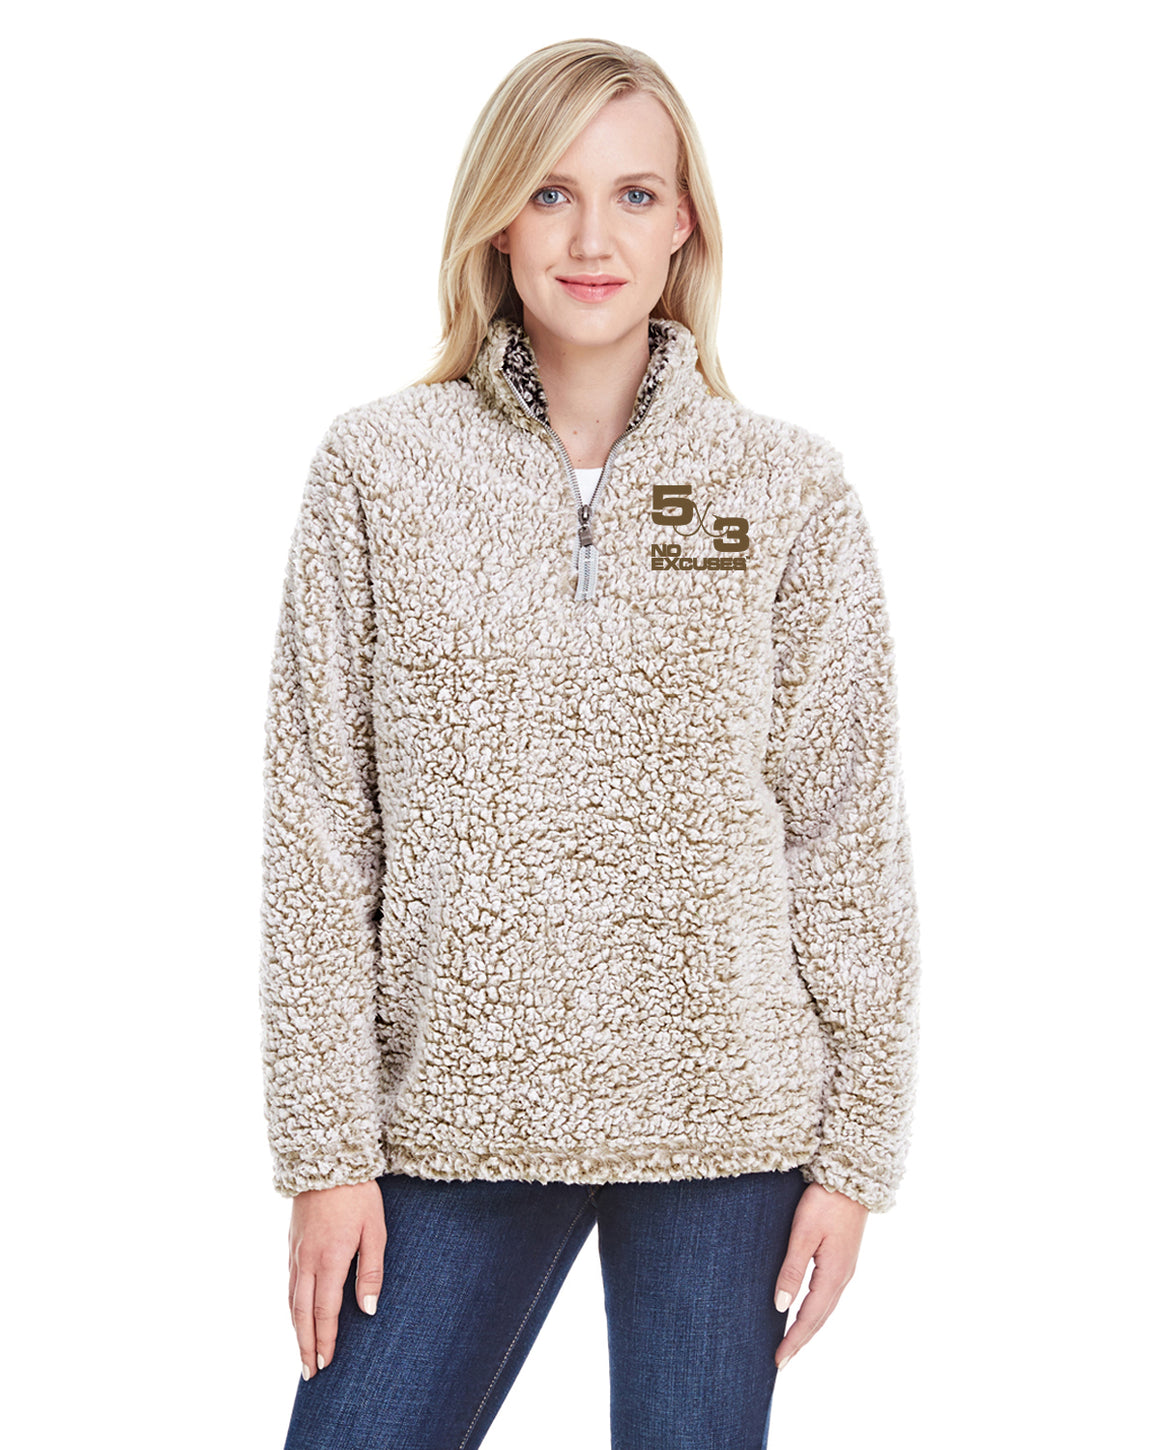 Women's Sherpa Jacket (4 Colors Available)